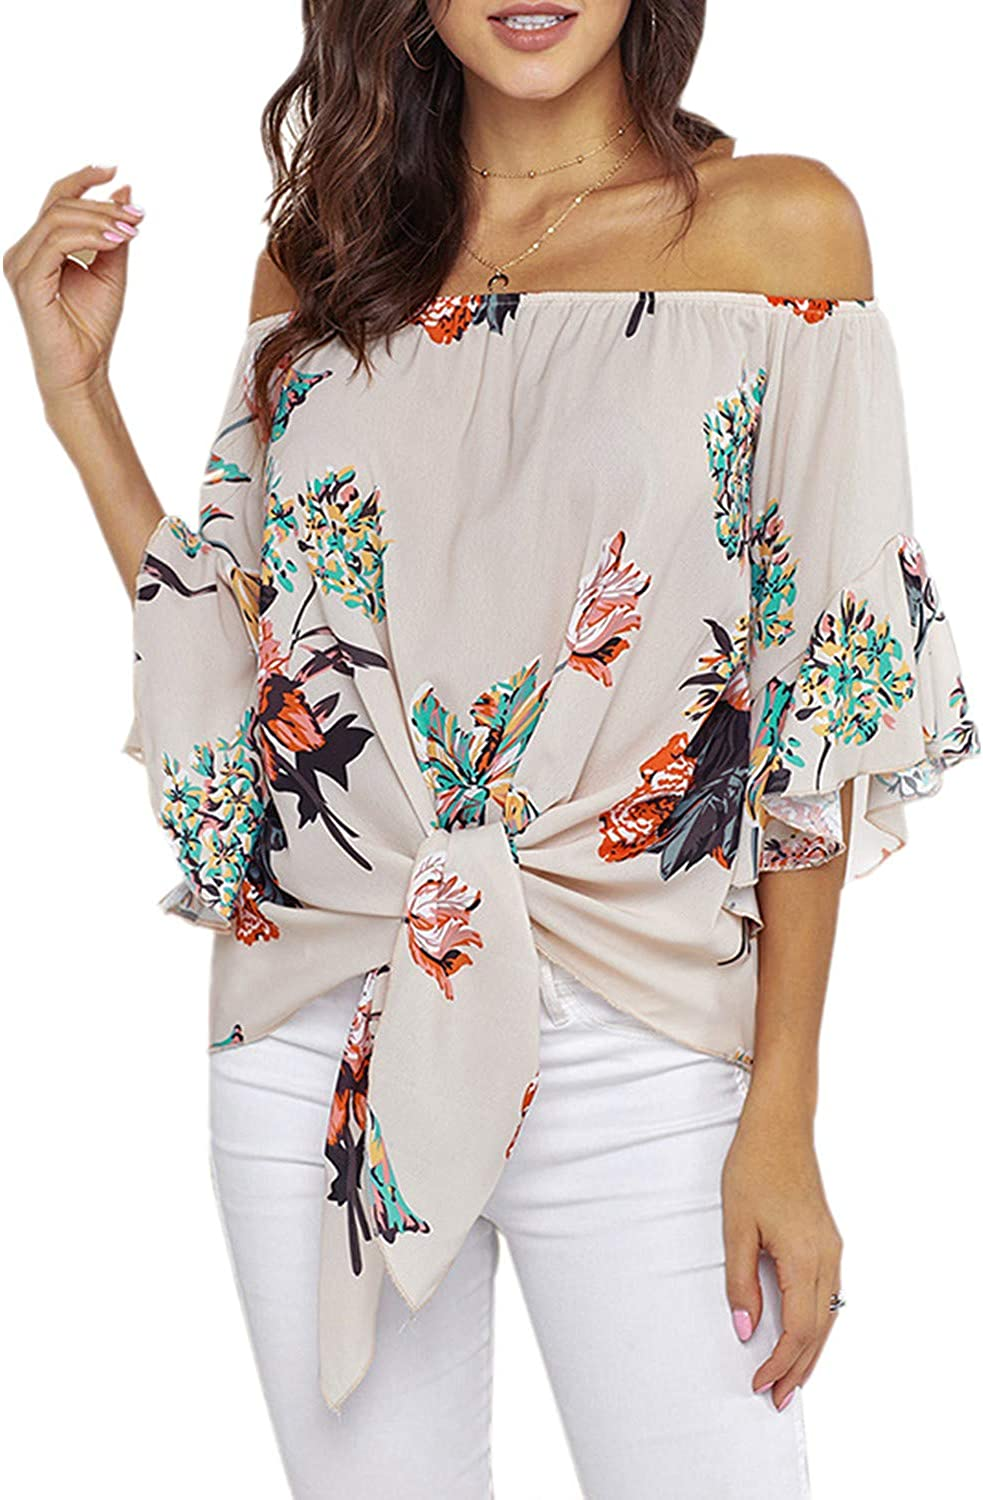 NREALY Falda Womens 3//4 Bell Print Sleeve Off Shoulder Front Tie Knot T Shirt Tops Blouse